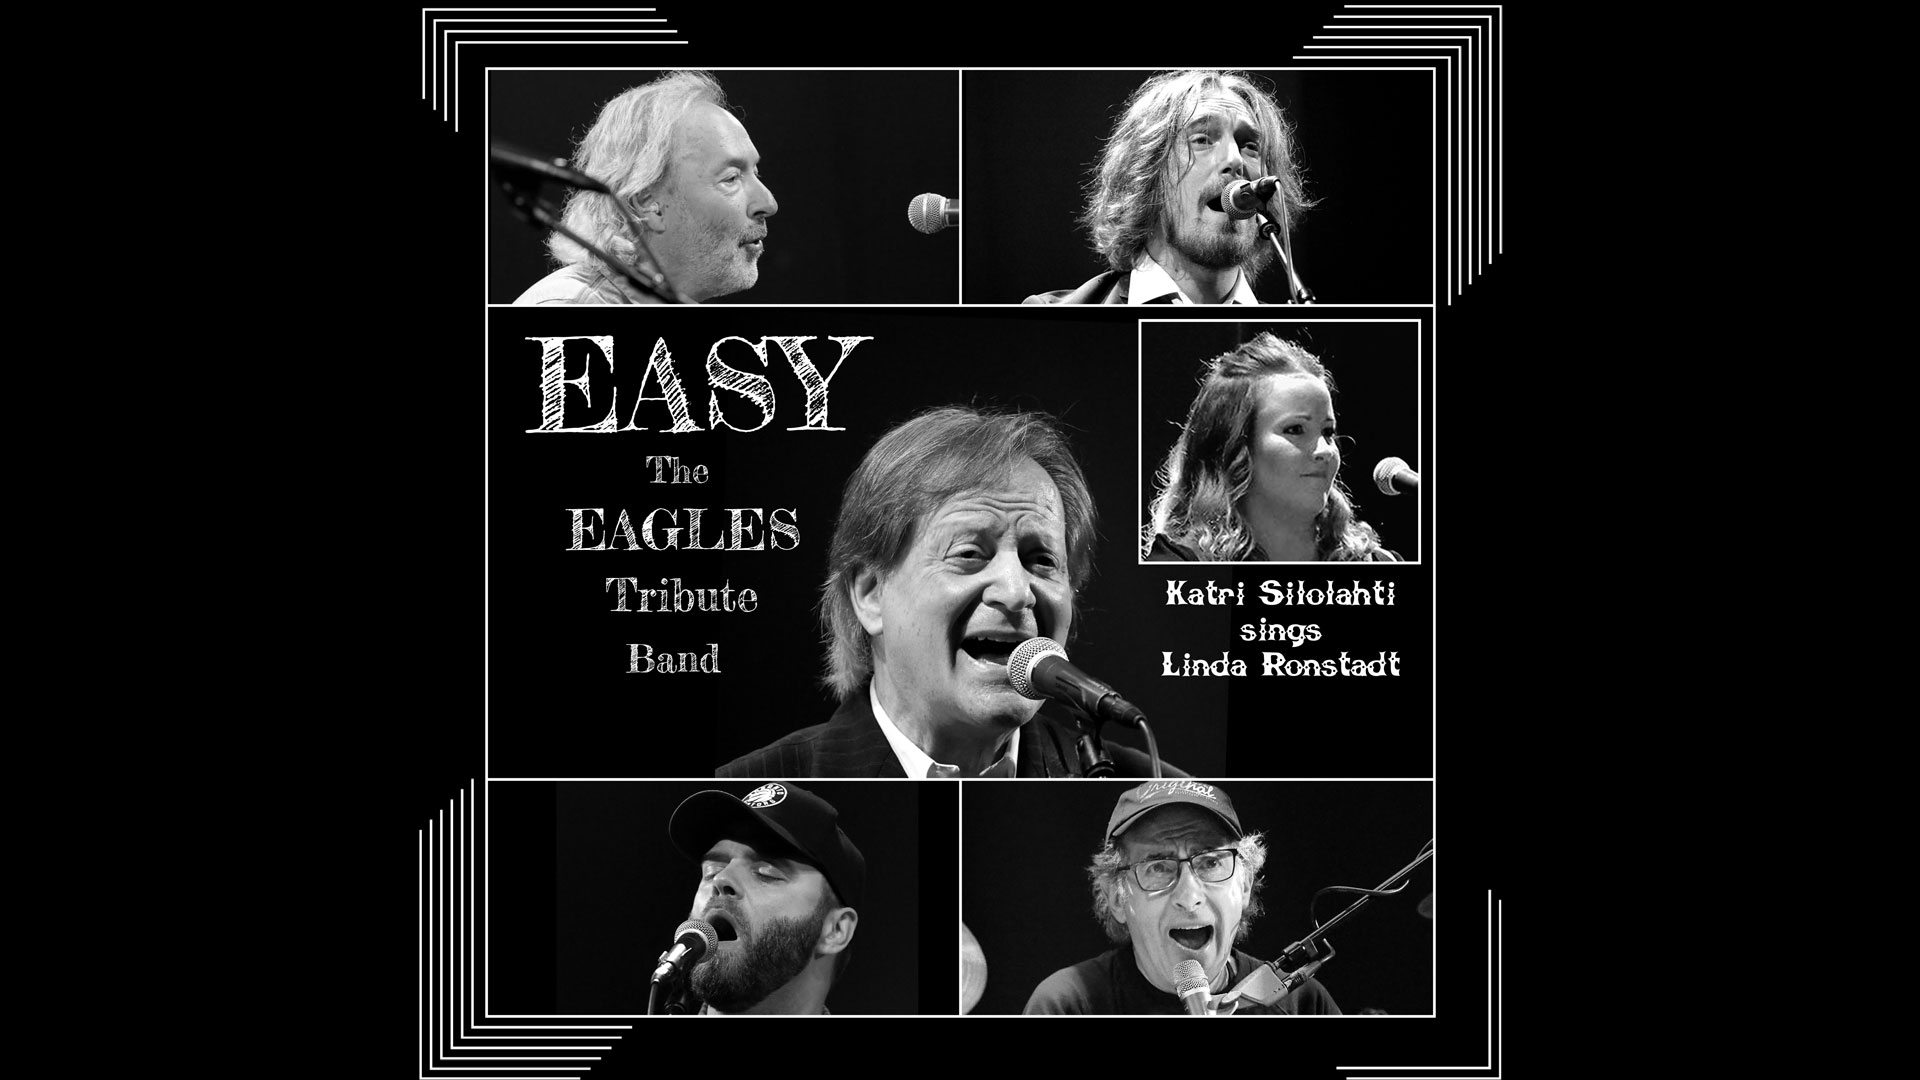 Easy - The Eagles Tribute Band (Mustio) la 1.8.2020 klo 18.00